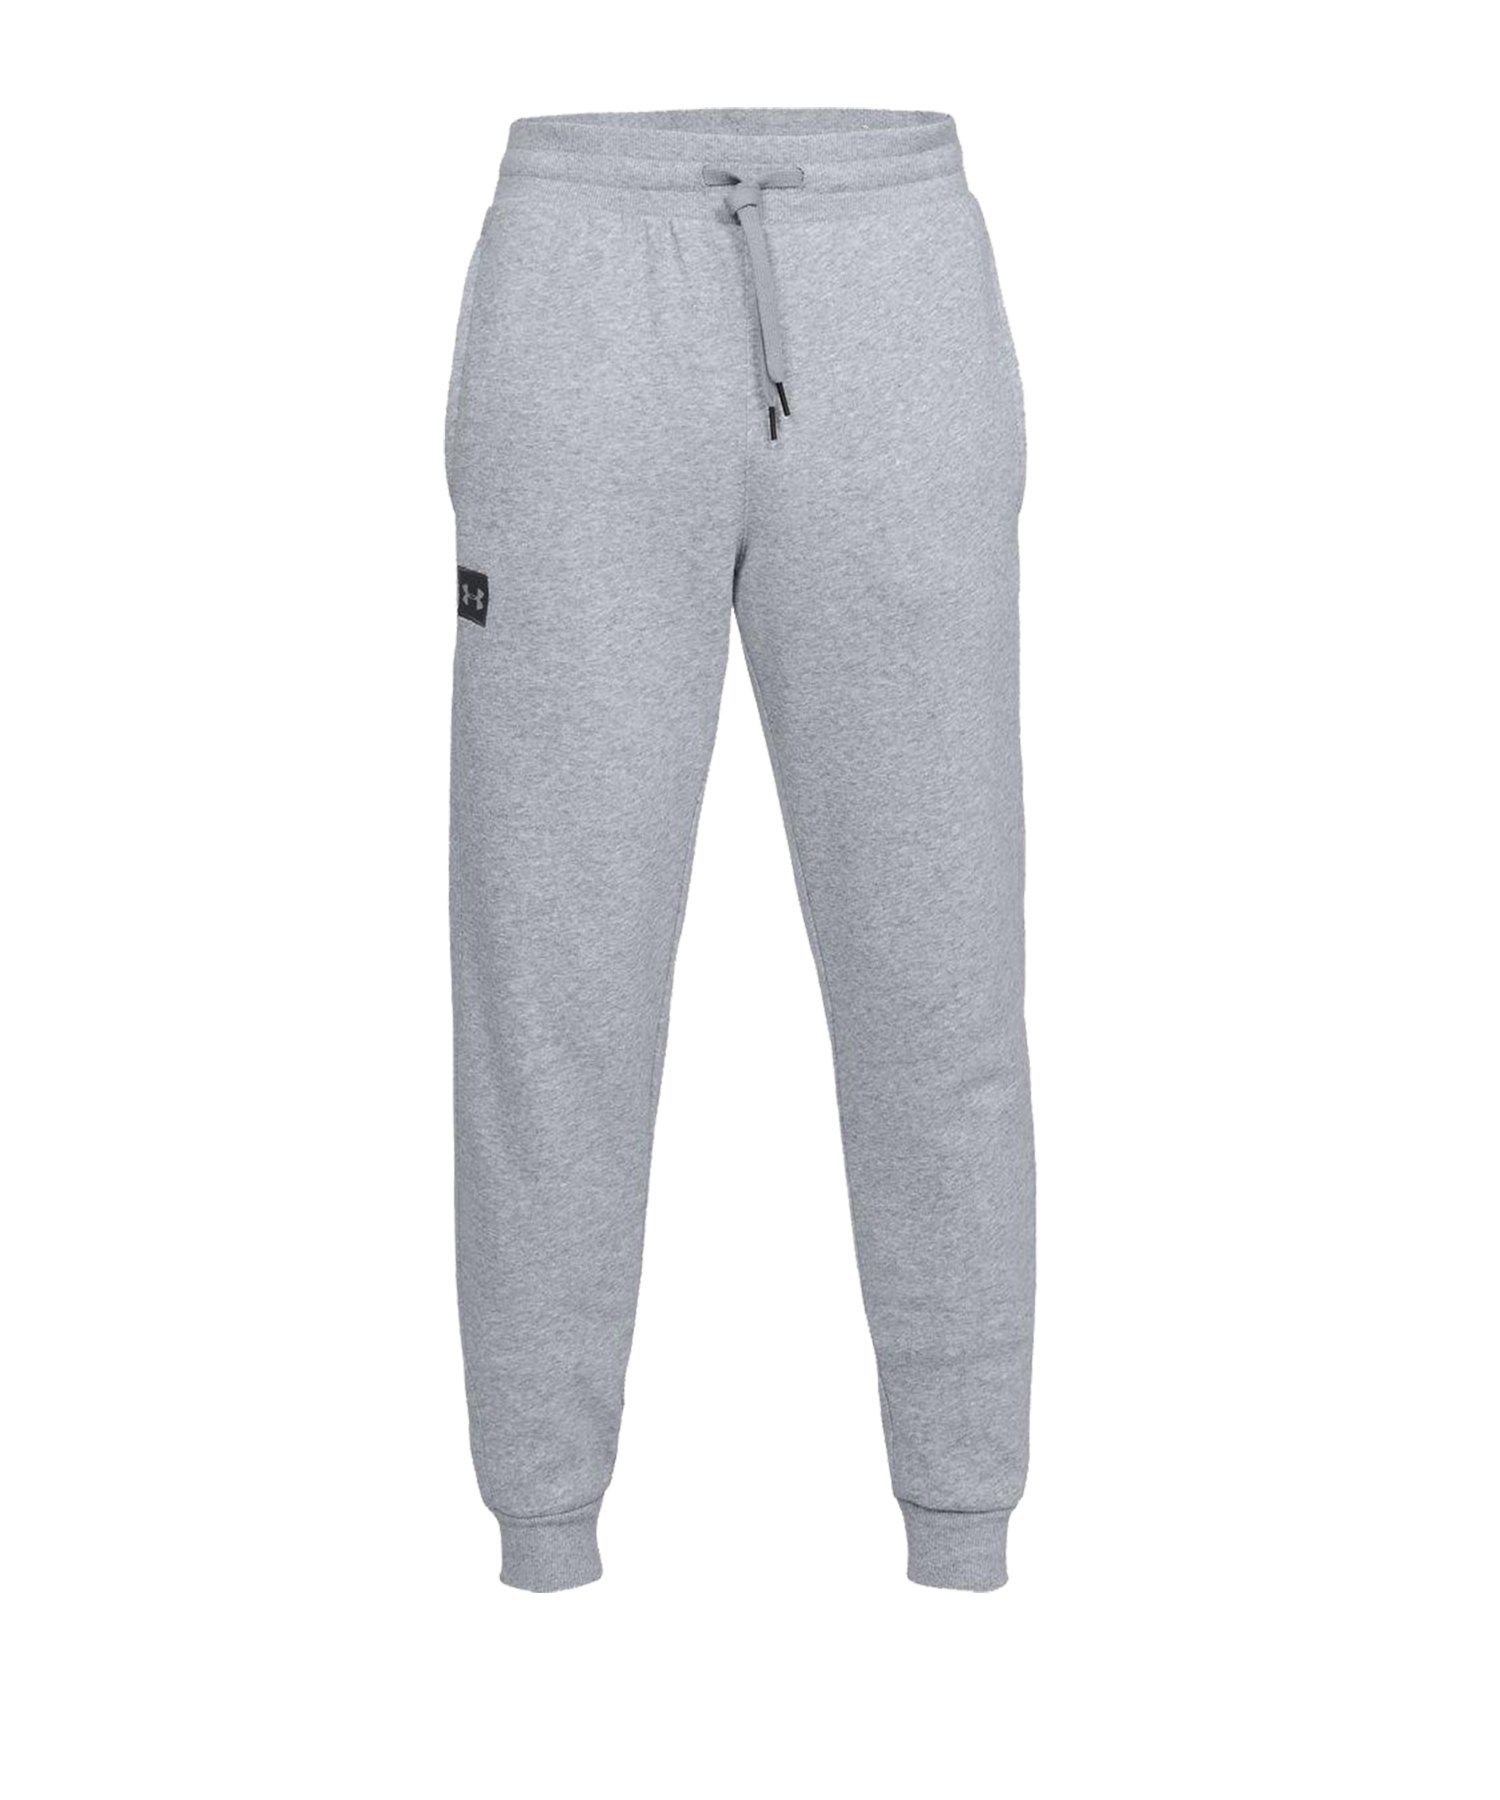 Under Armour Rival Fleece Trainingshose Grau F036 - grau